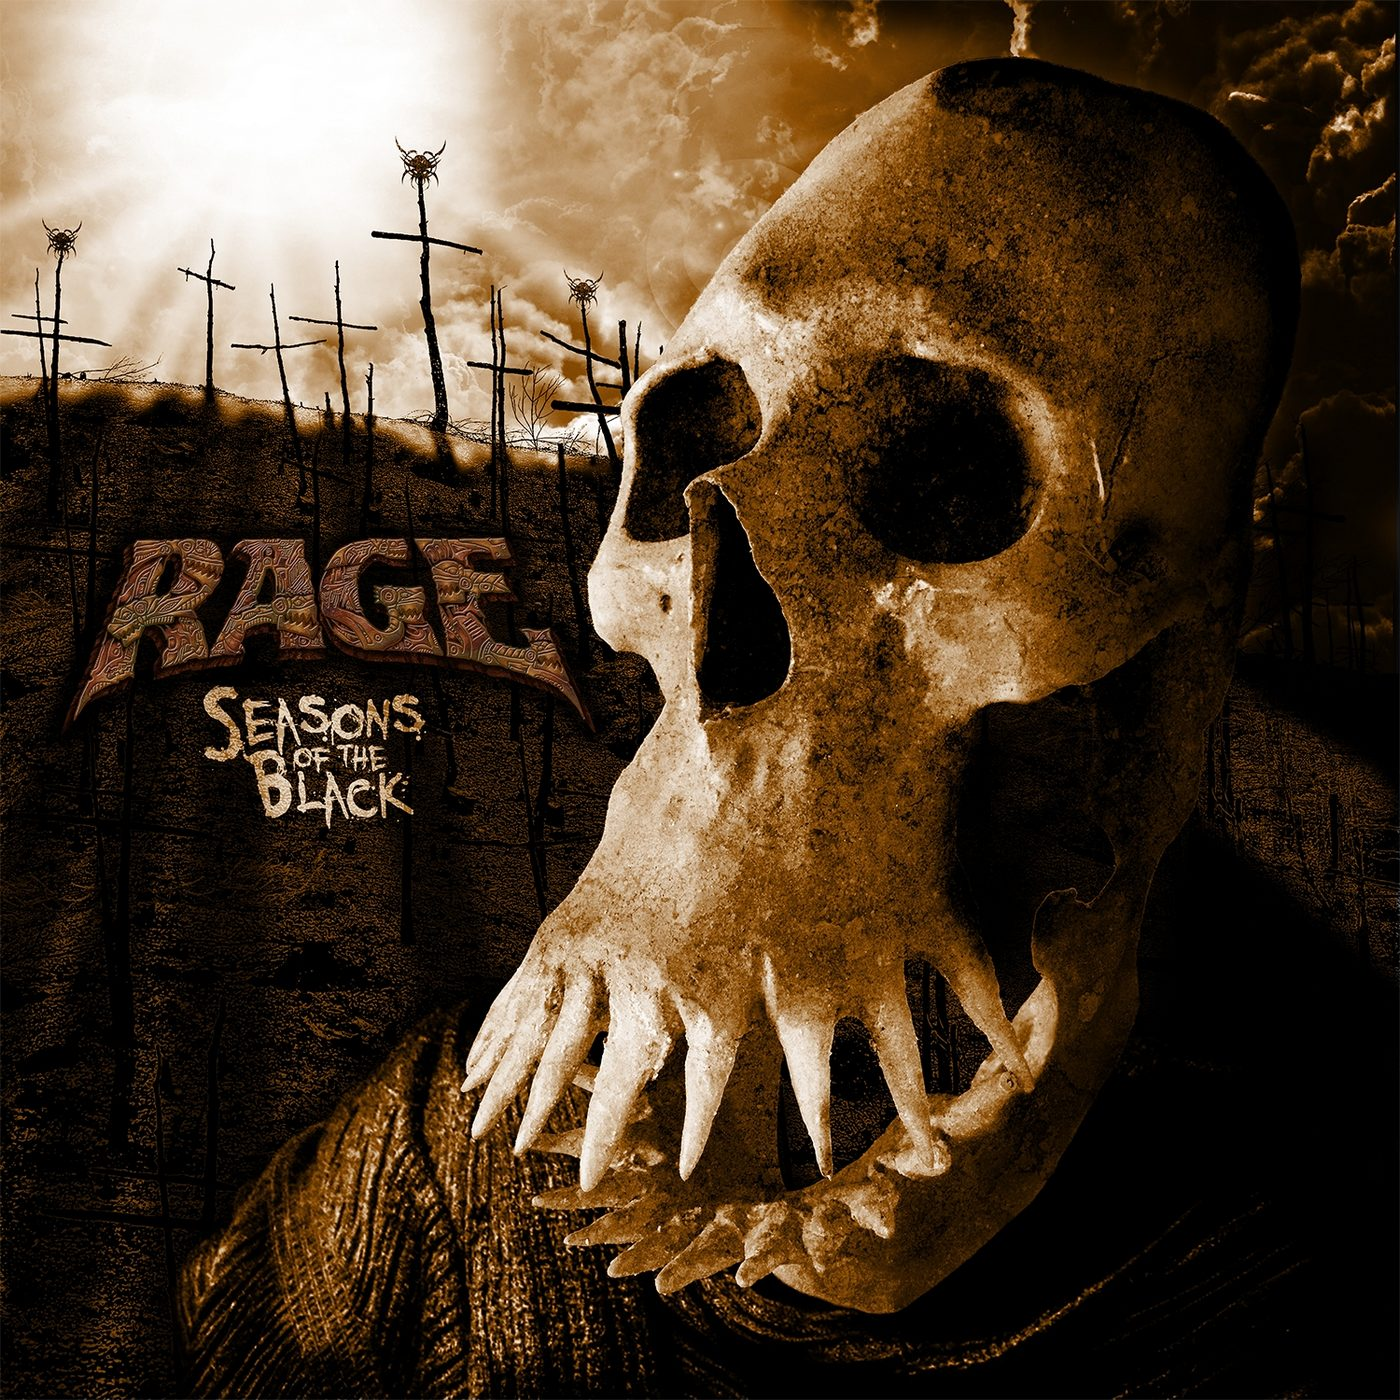 Rage: Seasons of the black (2017) Book Cover